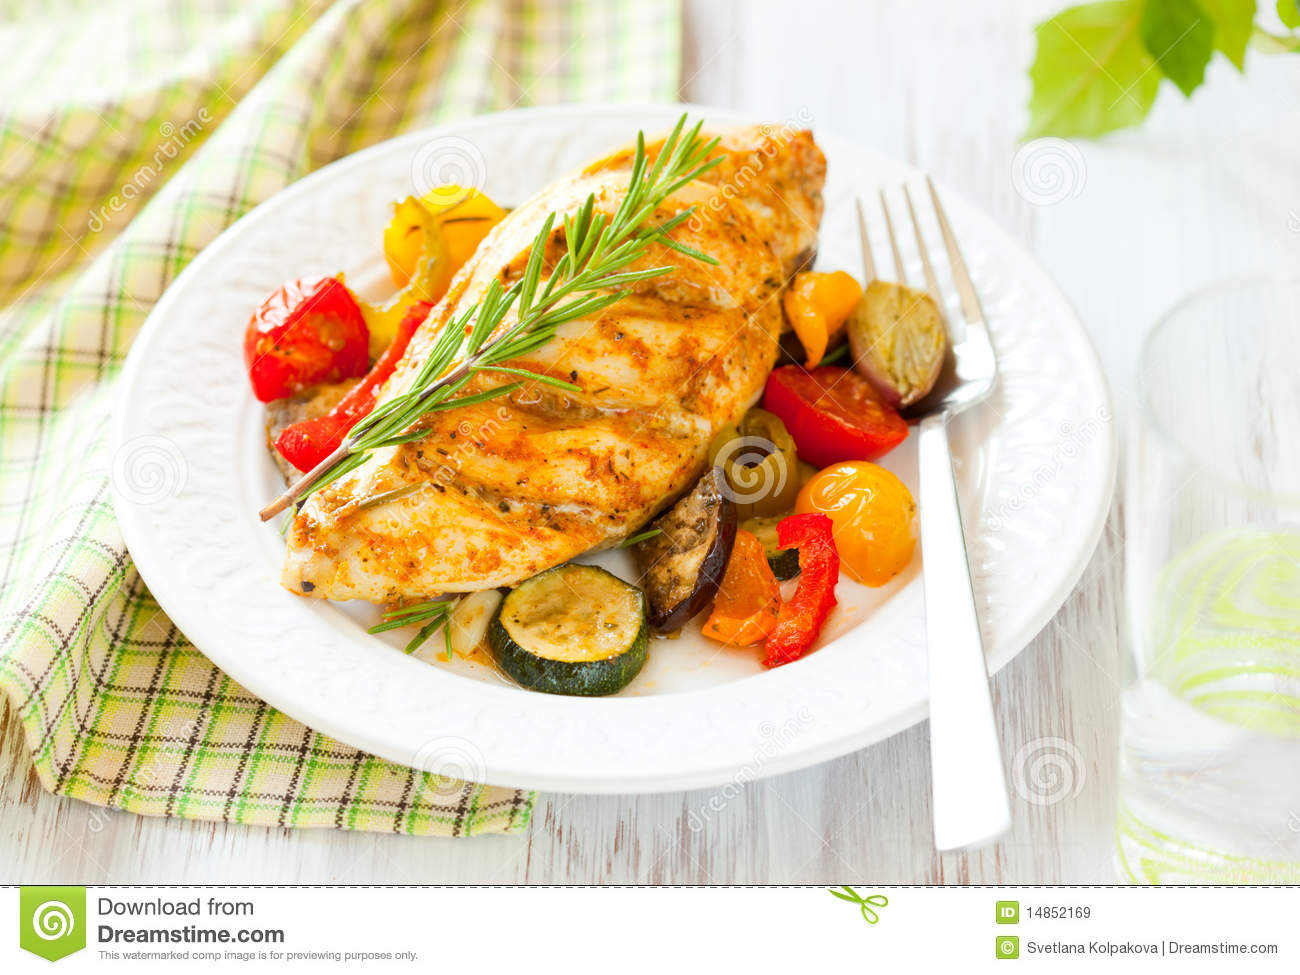 Chicken breasts and vegetables